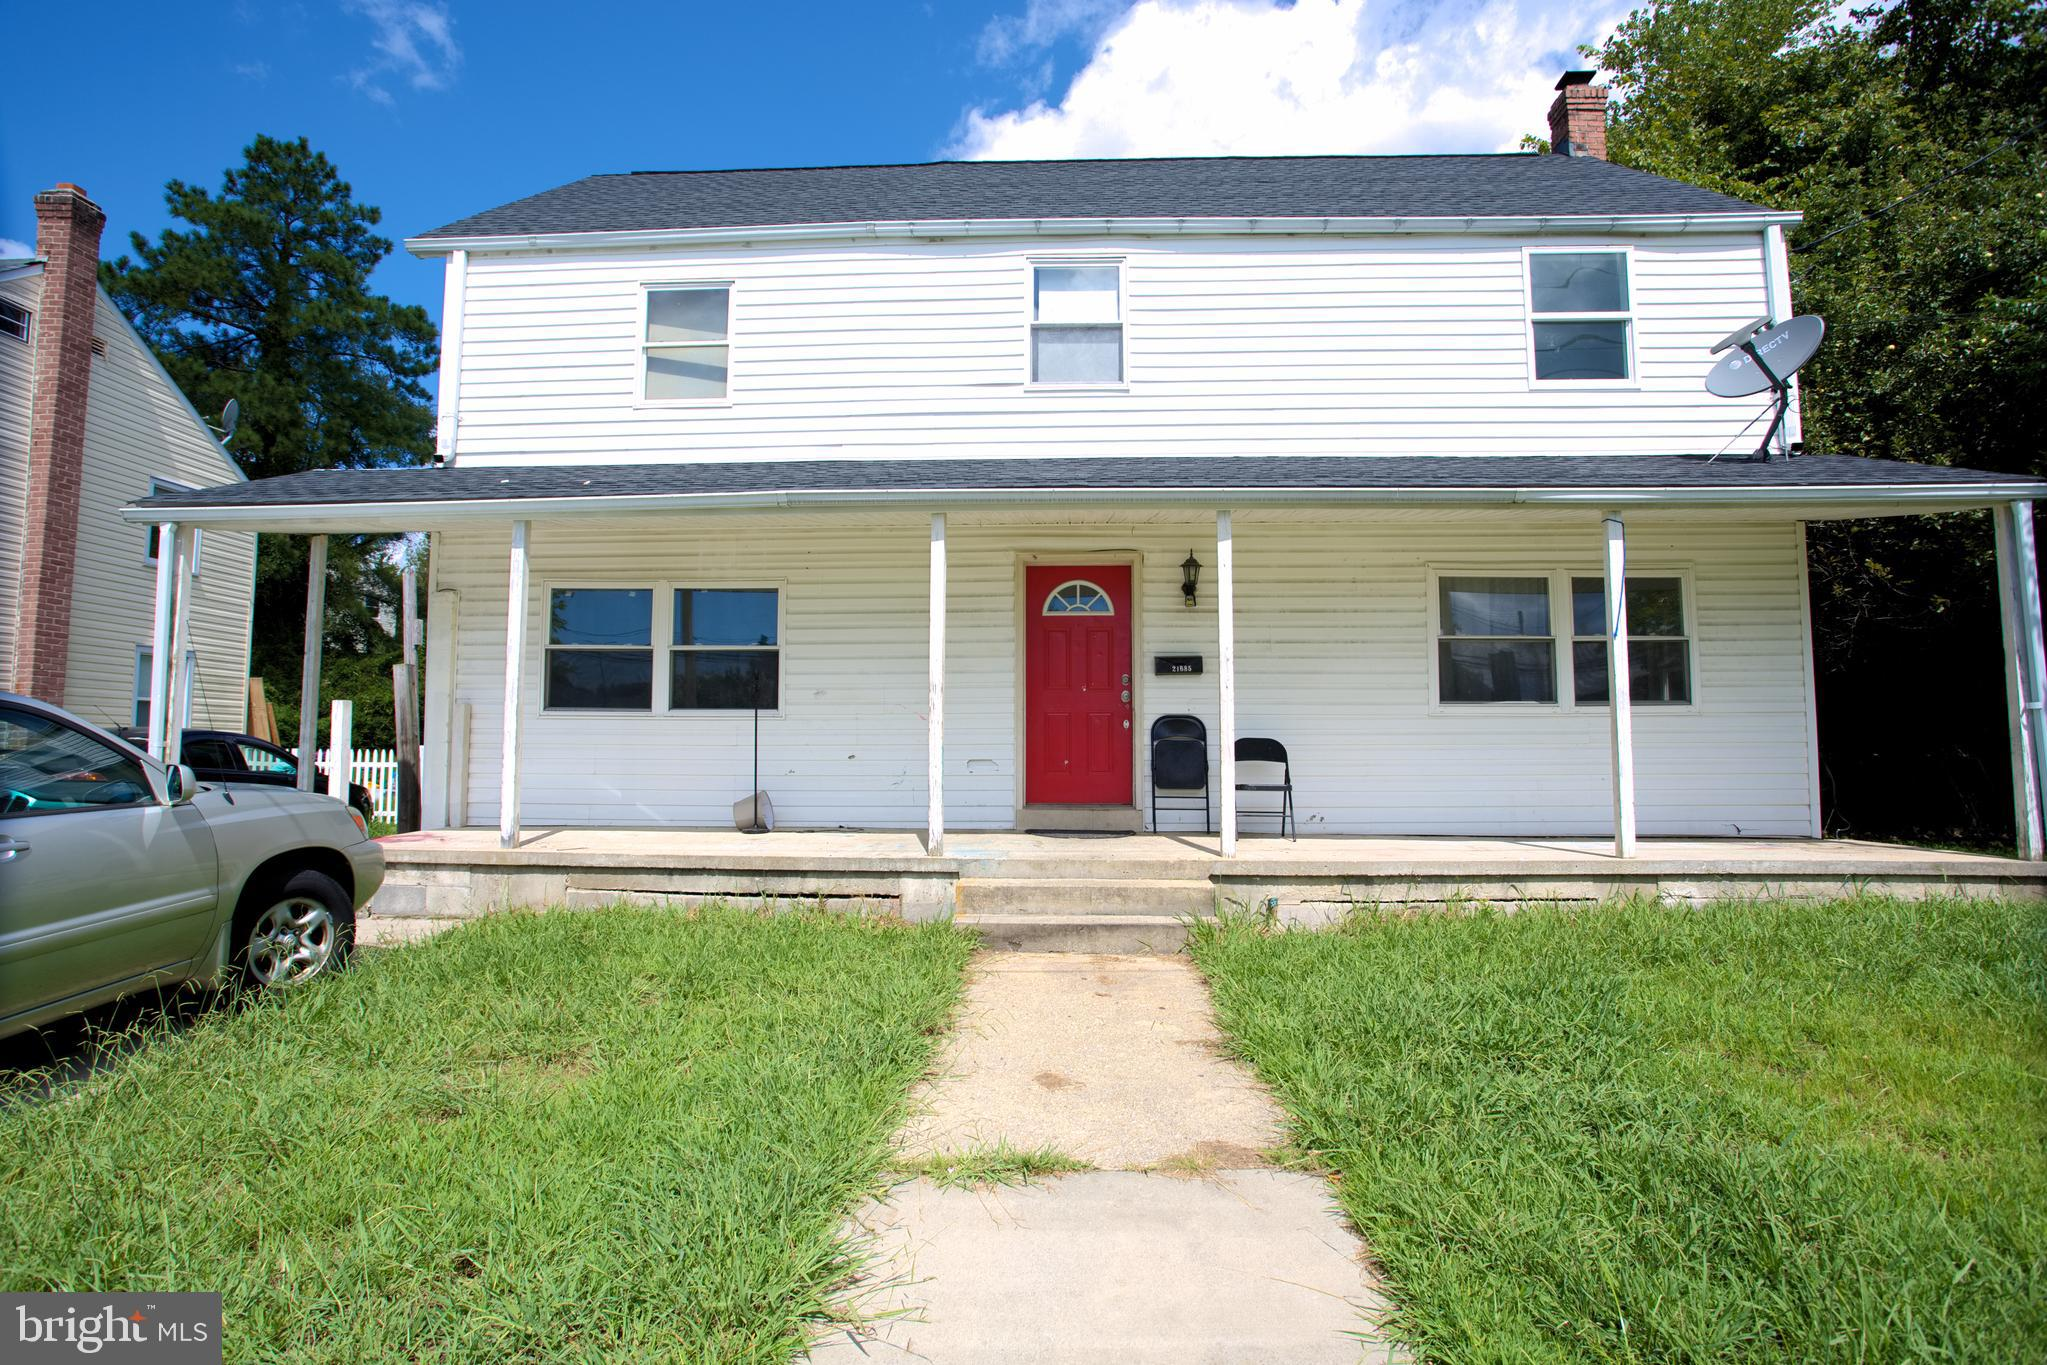 This 5 bedroom 3 full bath home offers a great location close to Pax River NAS and shopping; home needs work and great for FHA203K or Cash buyer, investor,  or anyone that has a vision to complete this house to make it their home.  This home is offered as-is in its current condition.  There is some work needed to complete second floor and no heat/central a/c on that floor.  You could move in and work on the house while living there since one level of the house has everything you need including 2 bedrooms, 2 baths, kitchen, living room, office/den and front porch; priced right to leave room for renovation costs to complete this home. This home was plumbed upstairs for 2nd kitchen but was not completed. Basement is unfinished;